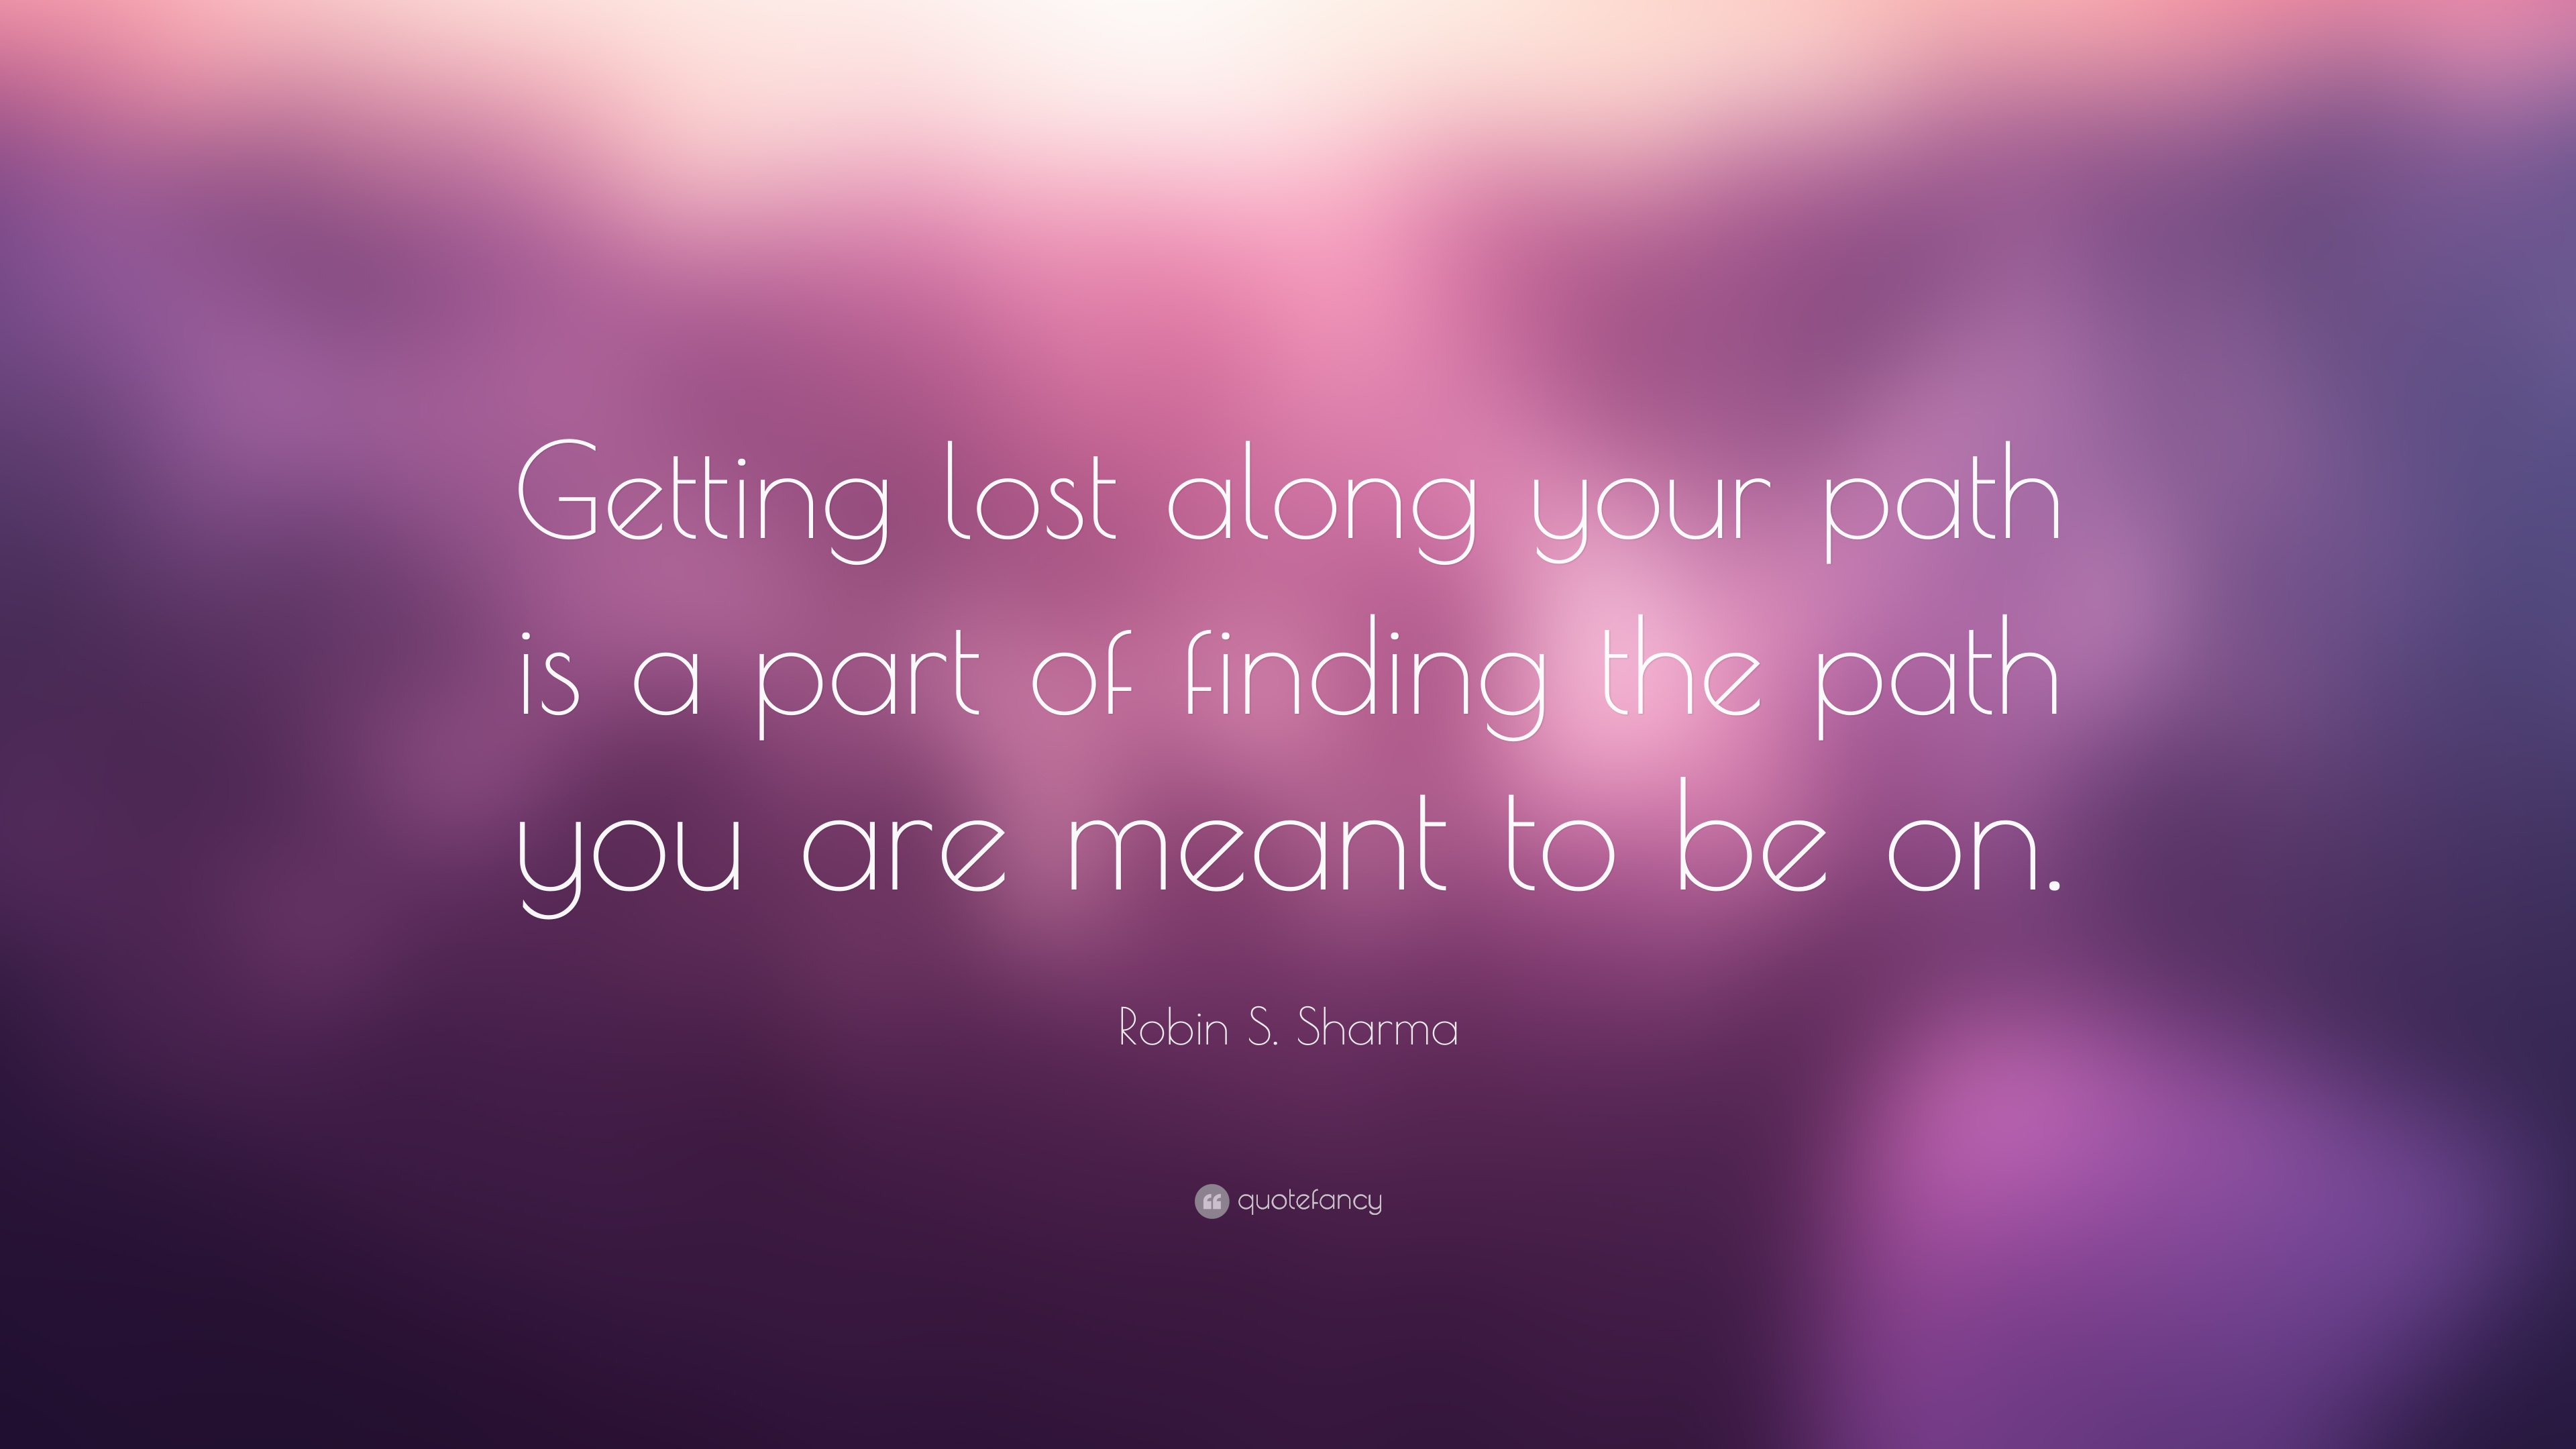 Robin S Sharma Quote Getting Lost Along Your Path Is A Part Of